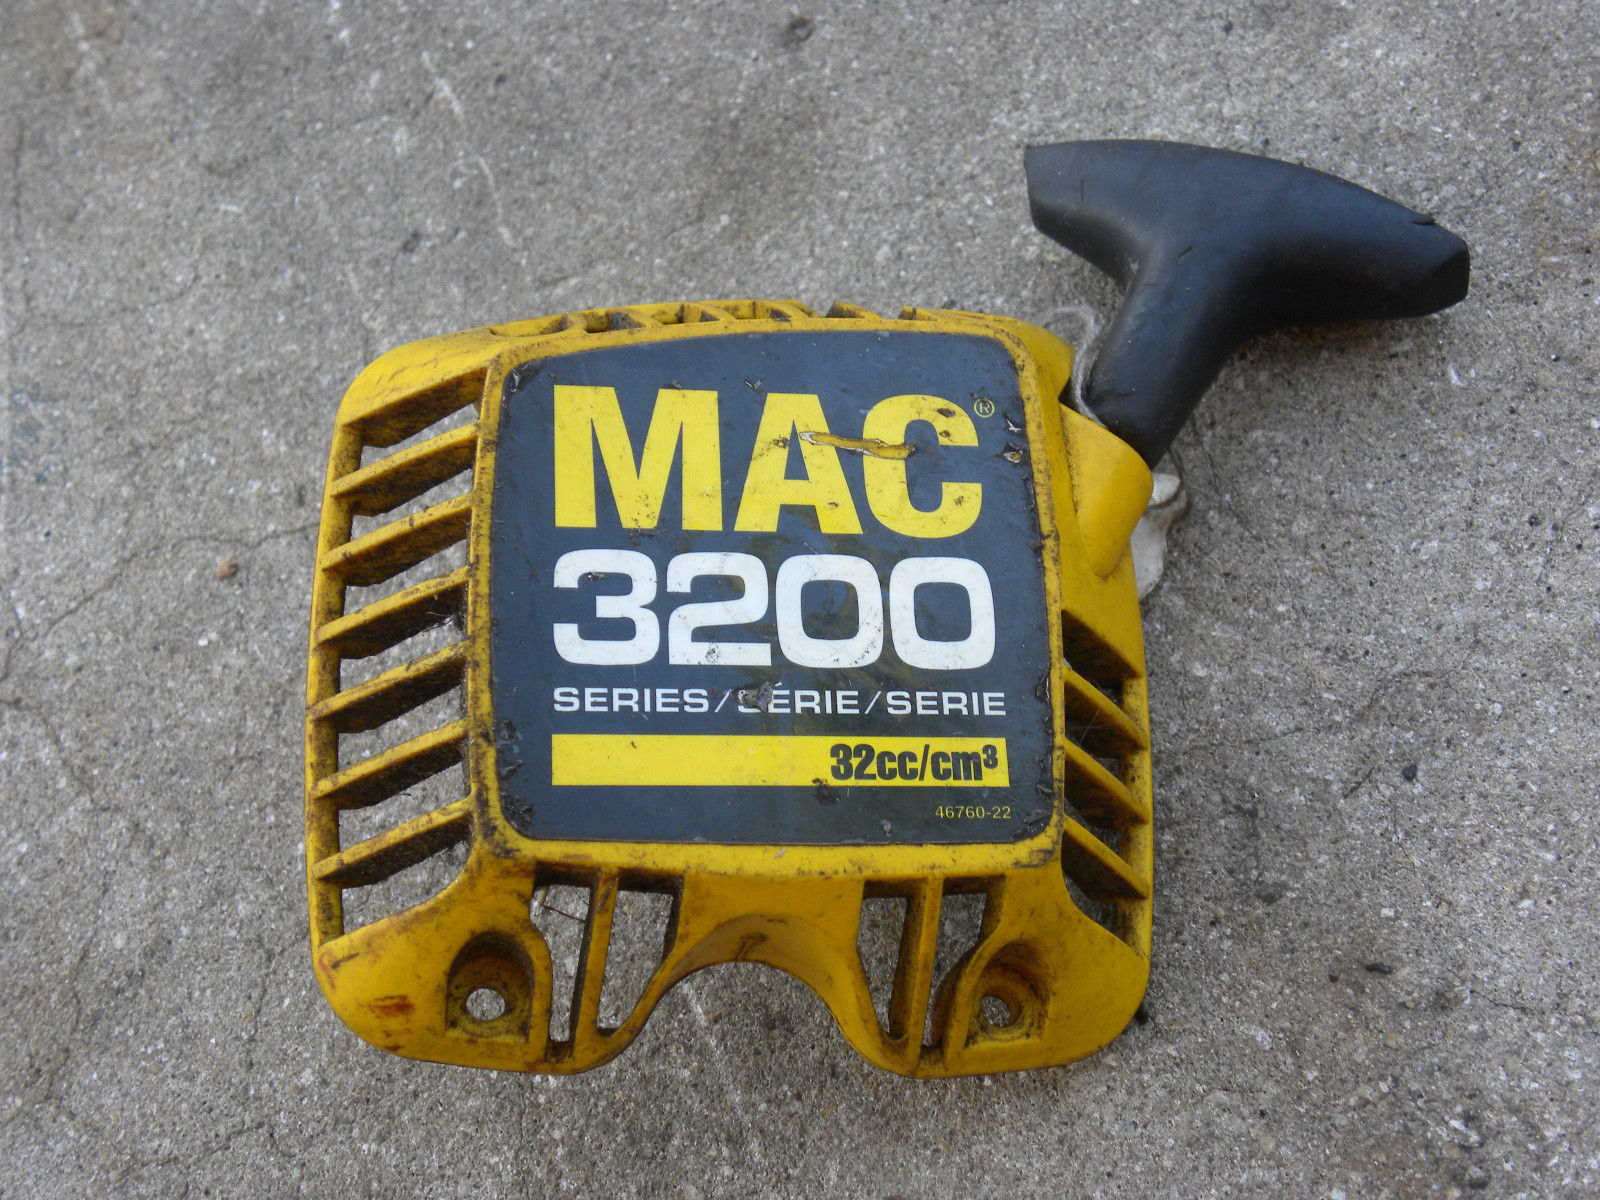 McCulloch 3200 Chainsaw Starter Assembly and 50 similar items